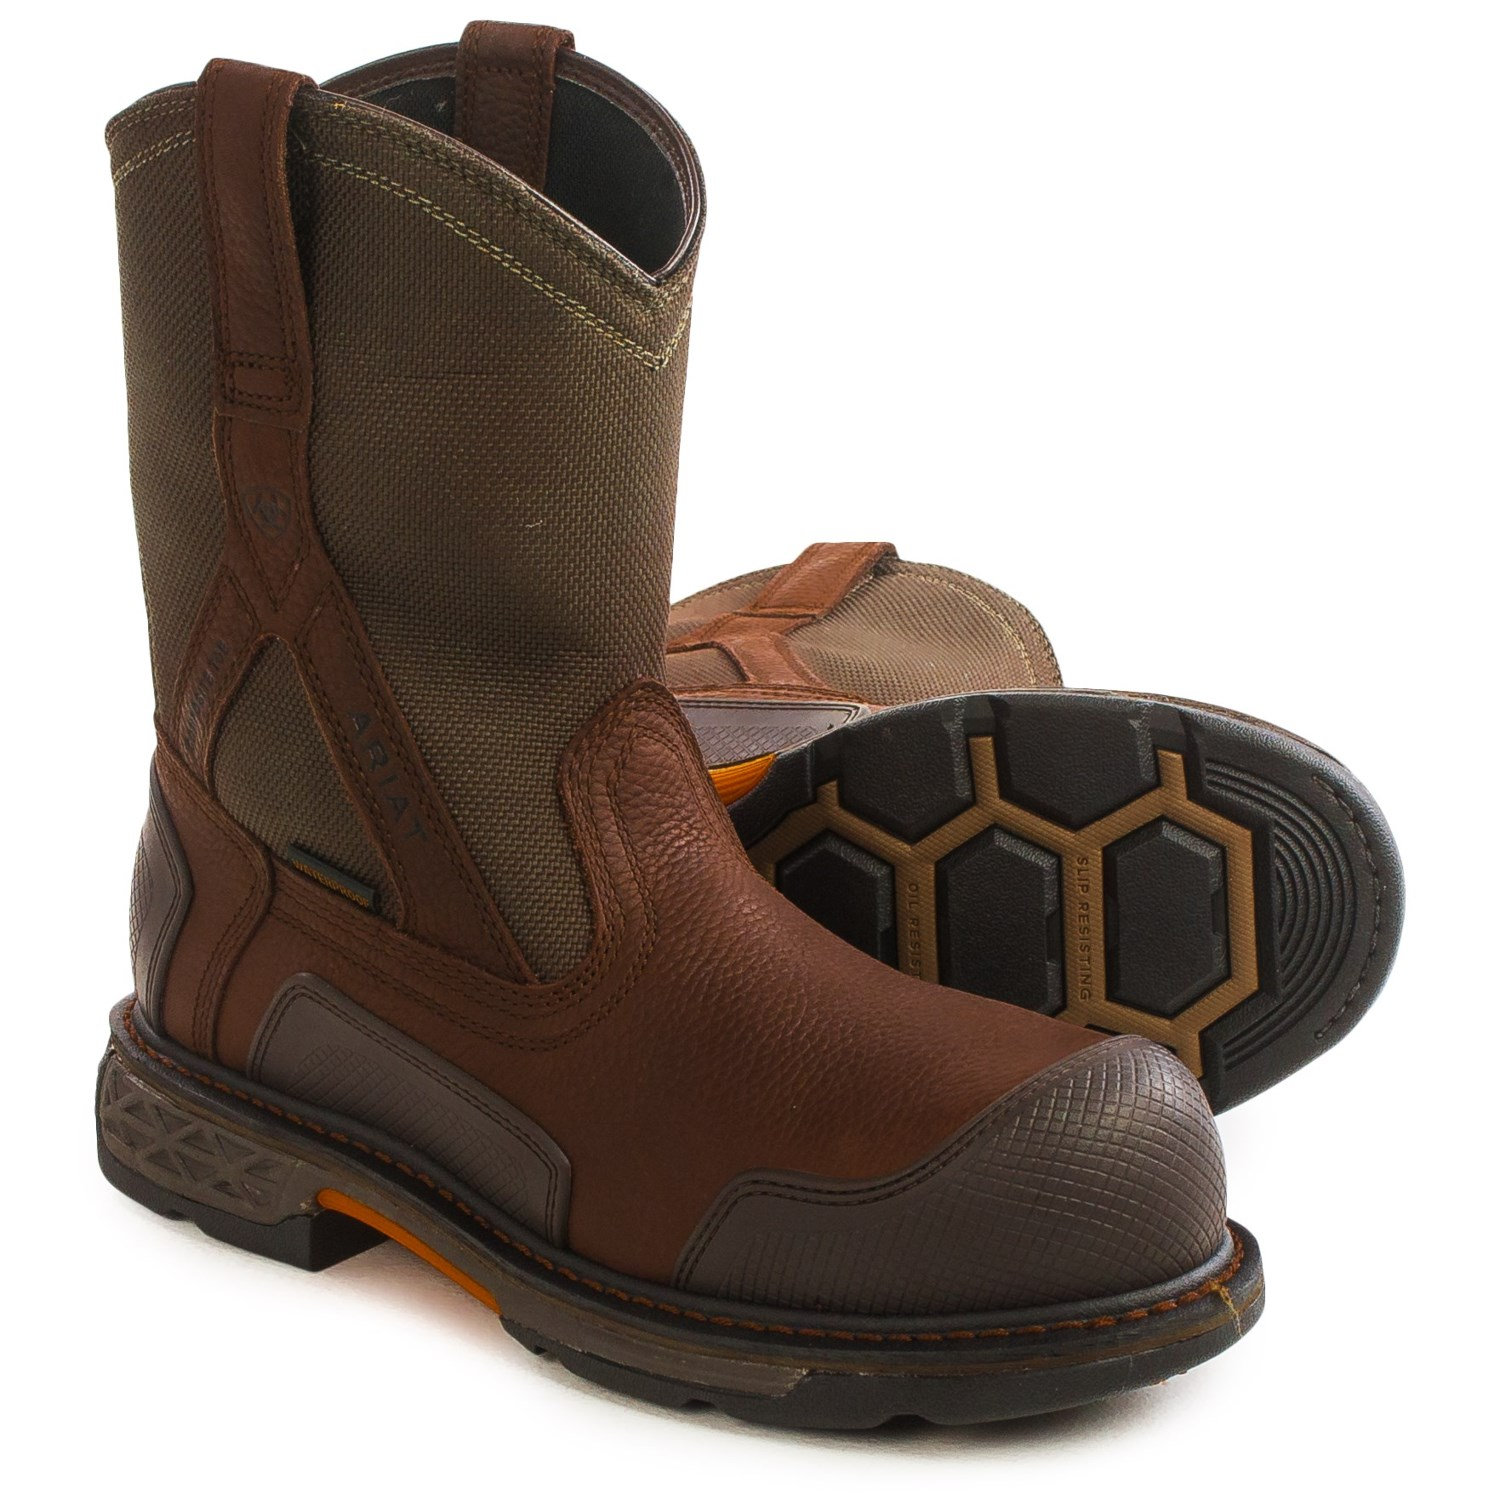 Ariat OverDrive XTR H20 CT Work Boots (For Men) 143XX - Save 39%